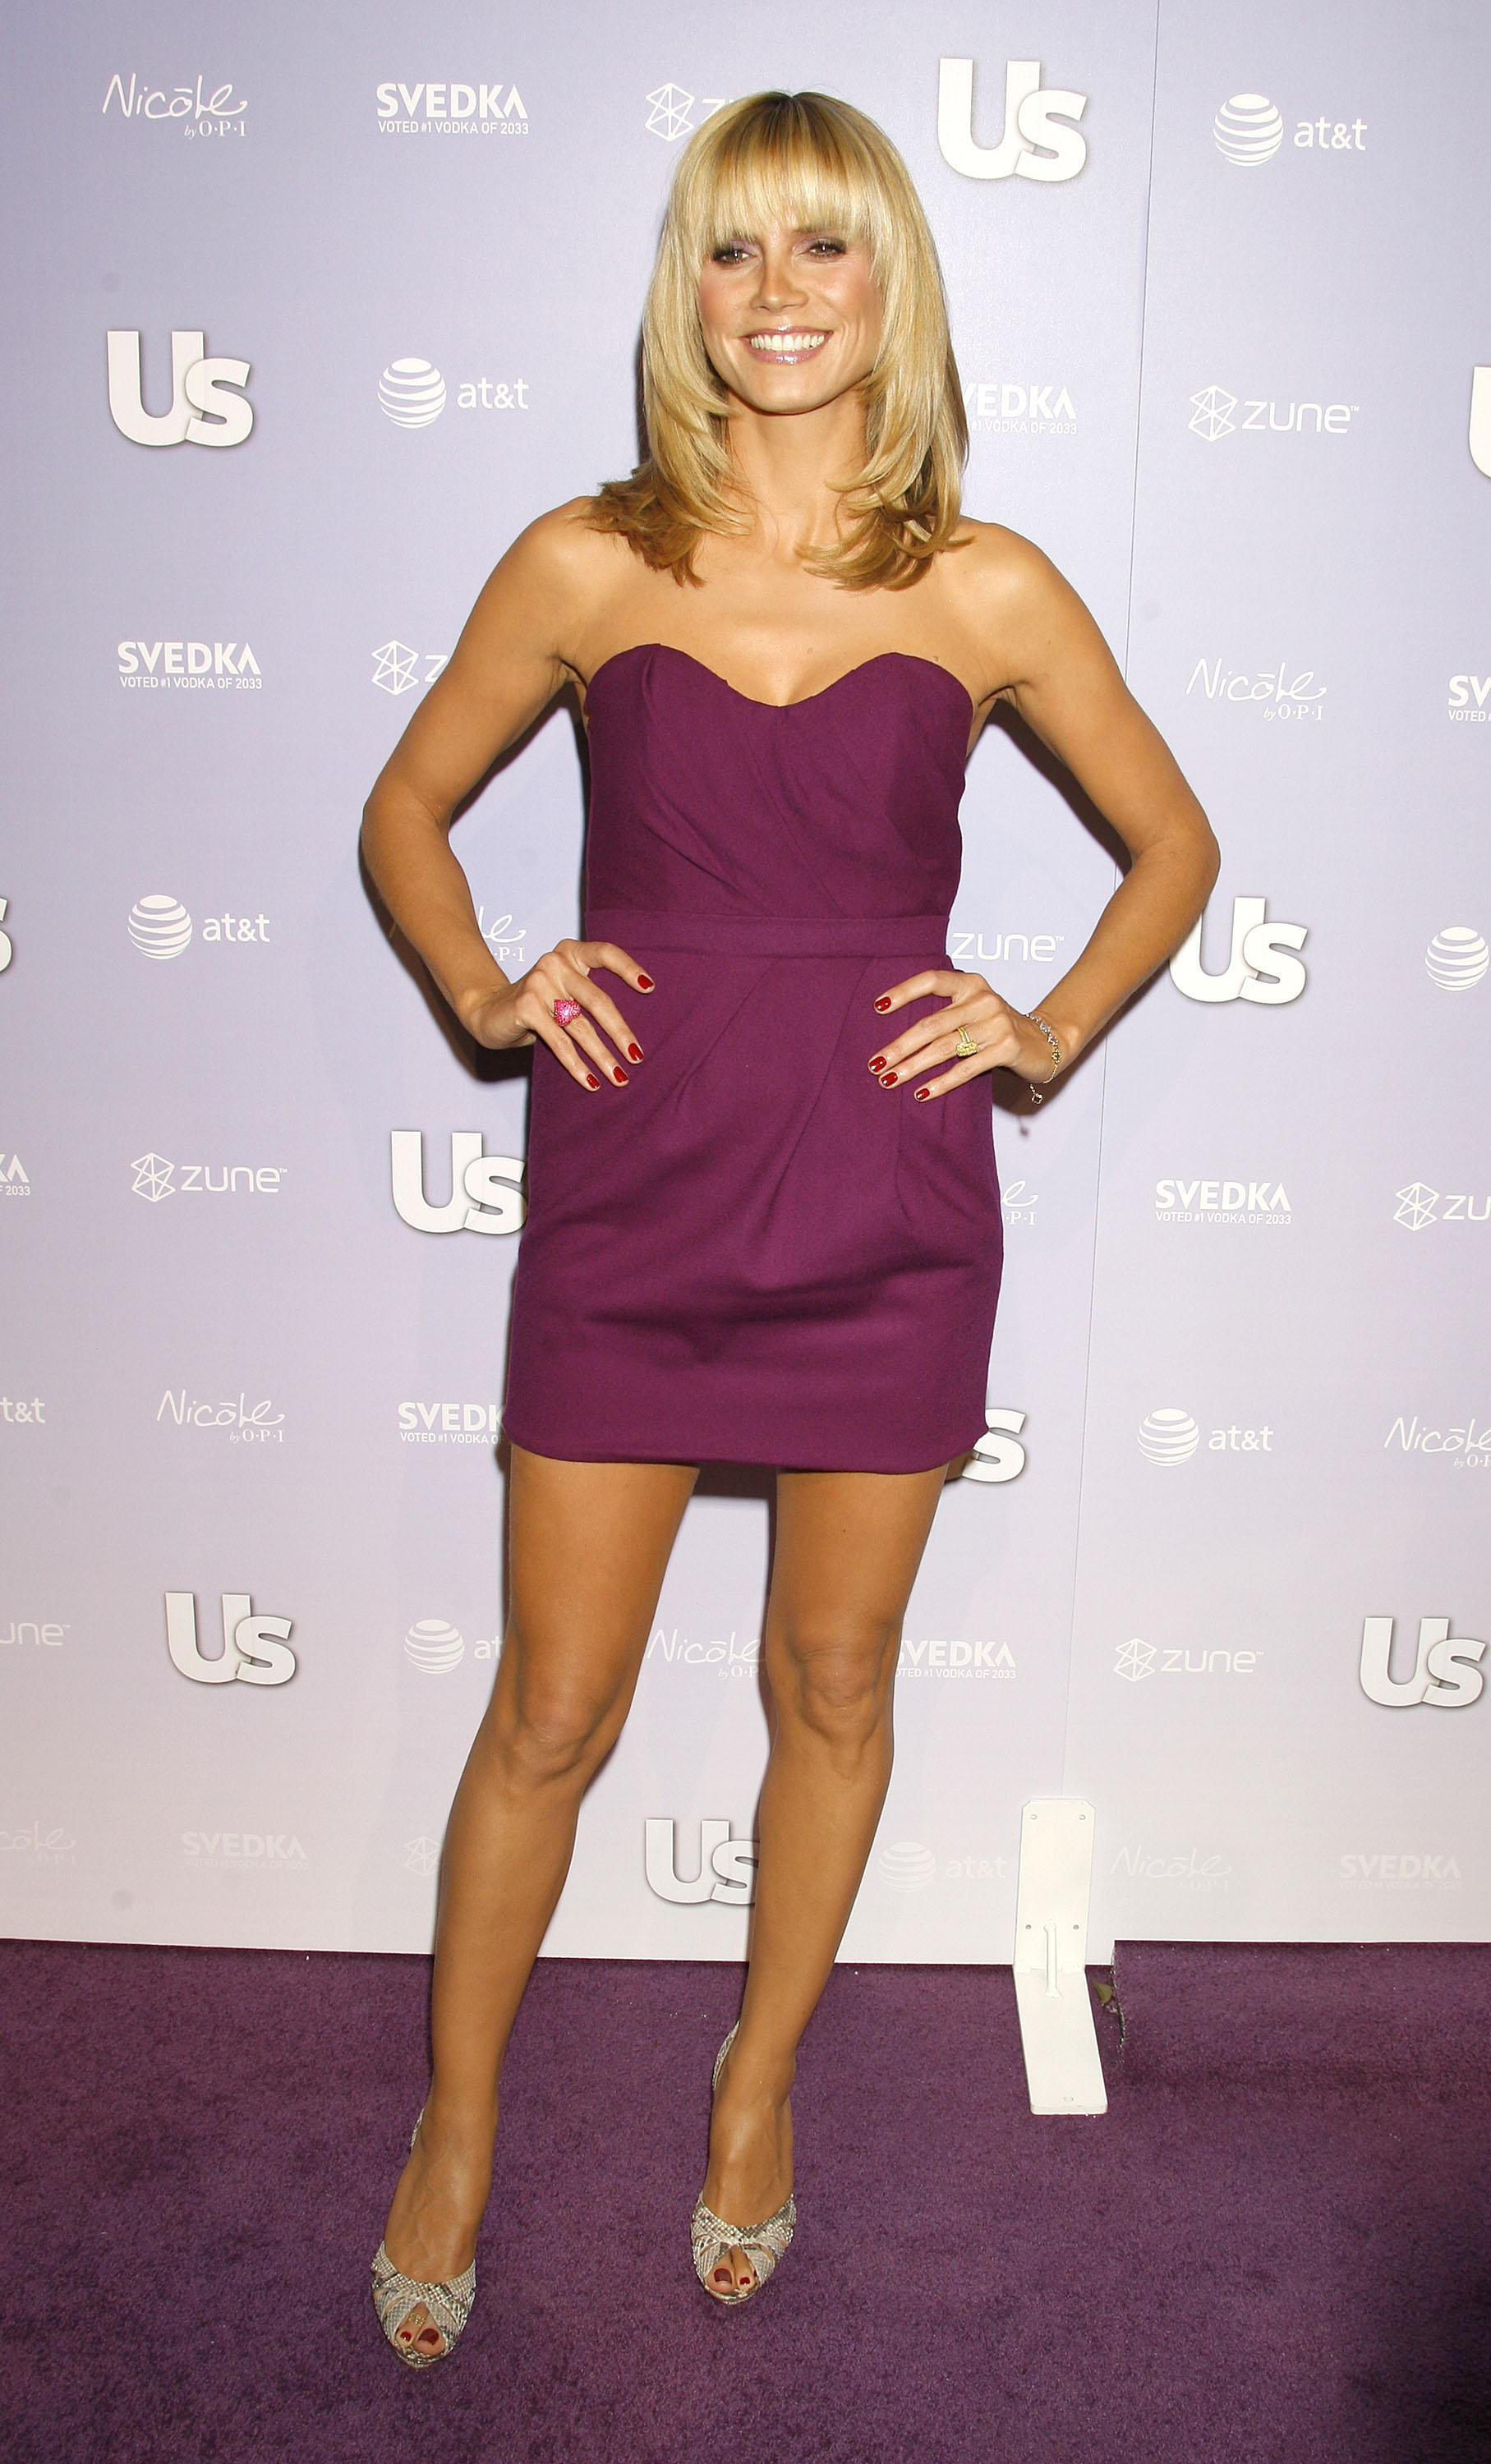 c883368eb47f Heidi Klum's All-Time Hottest Looks Designed by 'Project Runway' Contestants